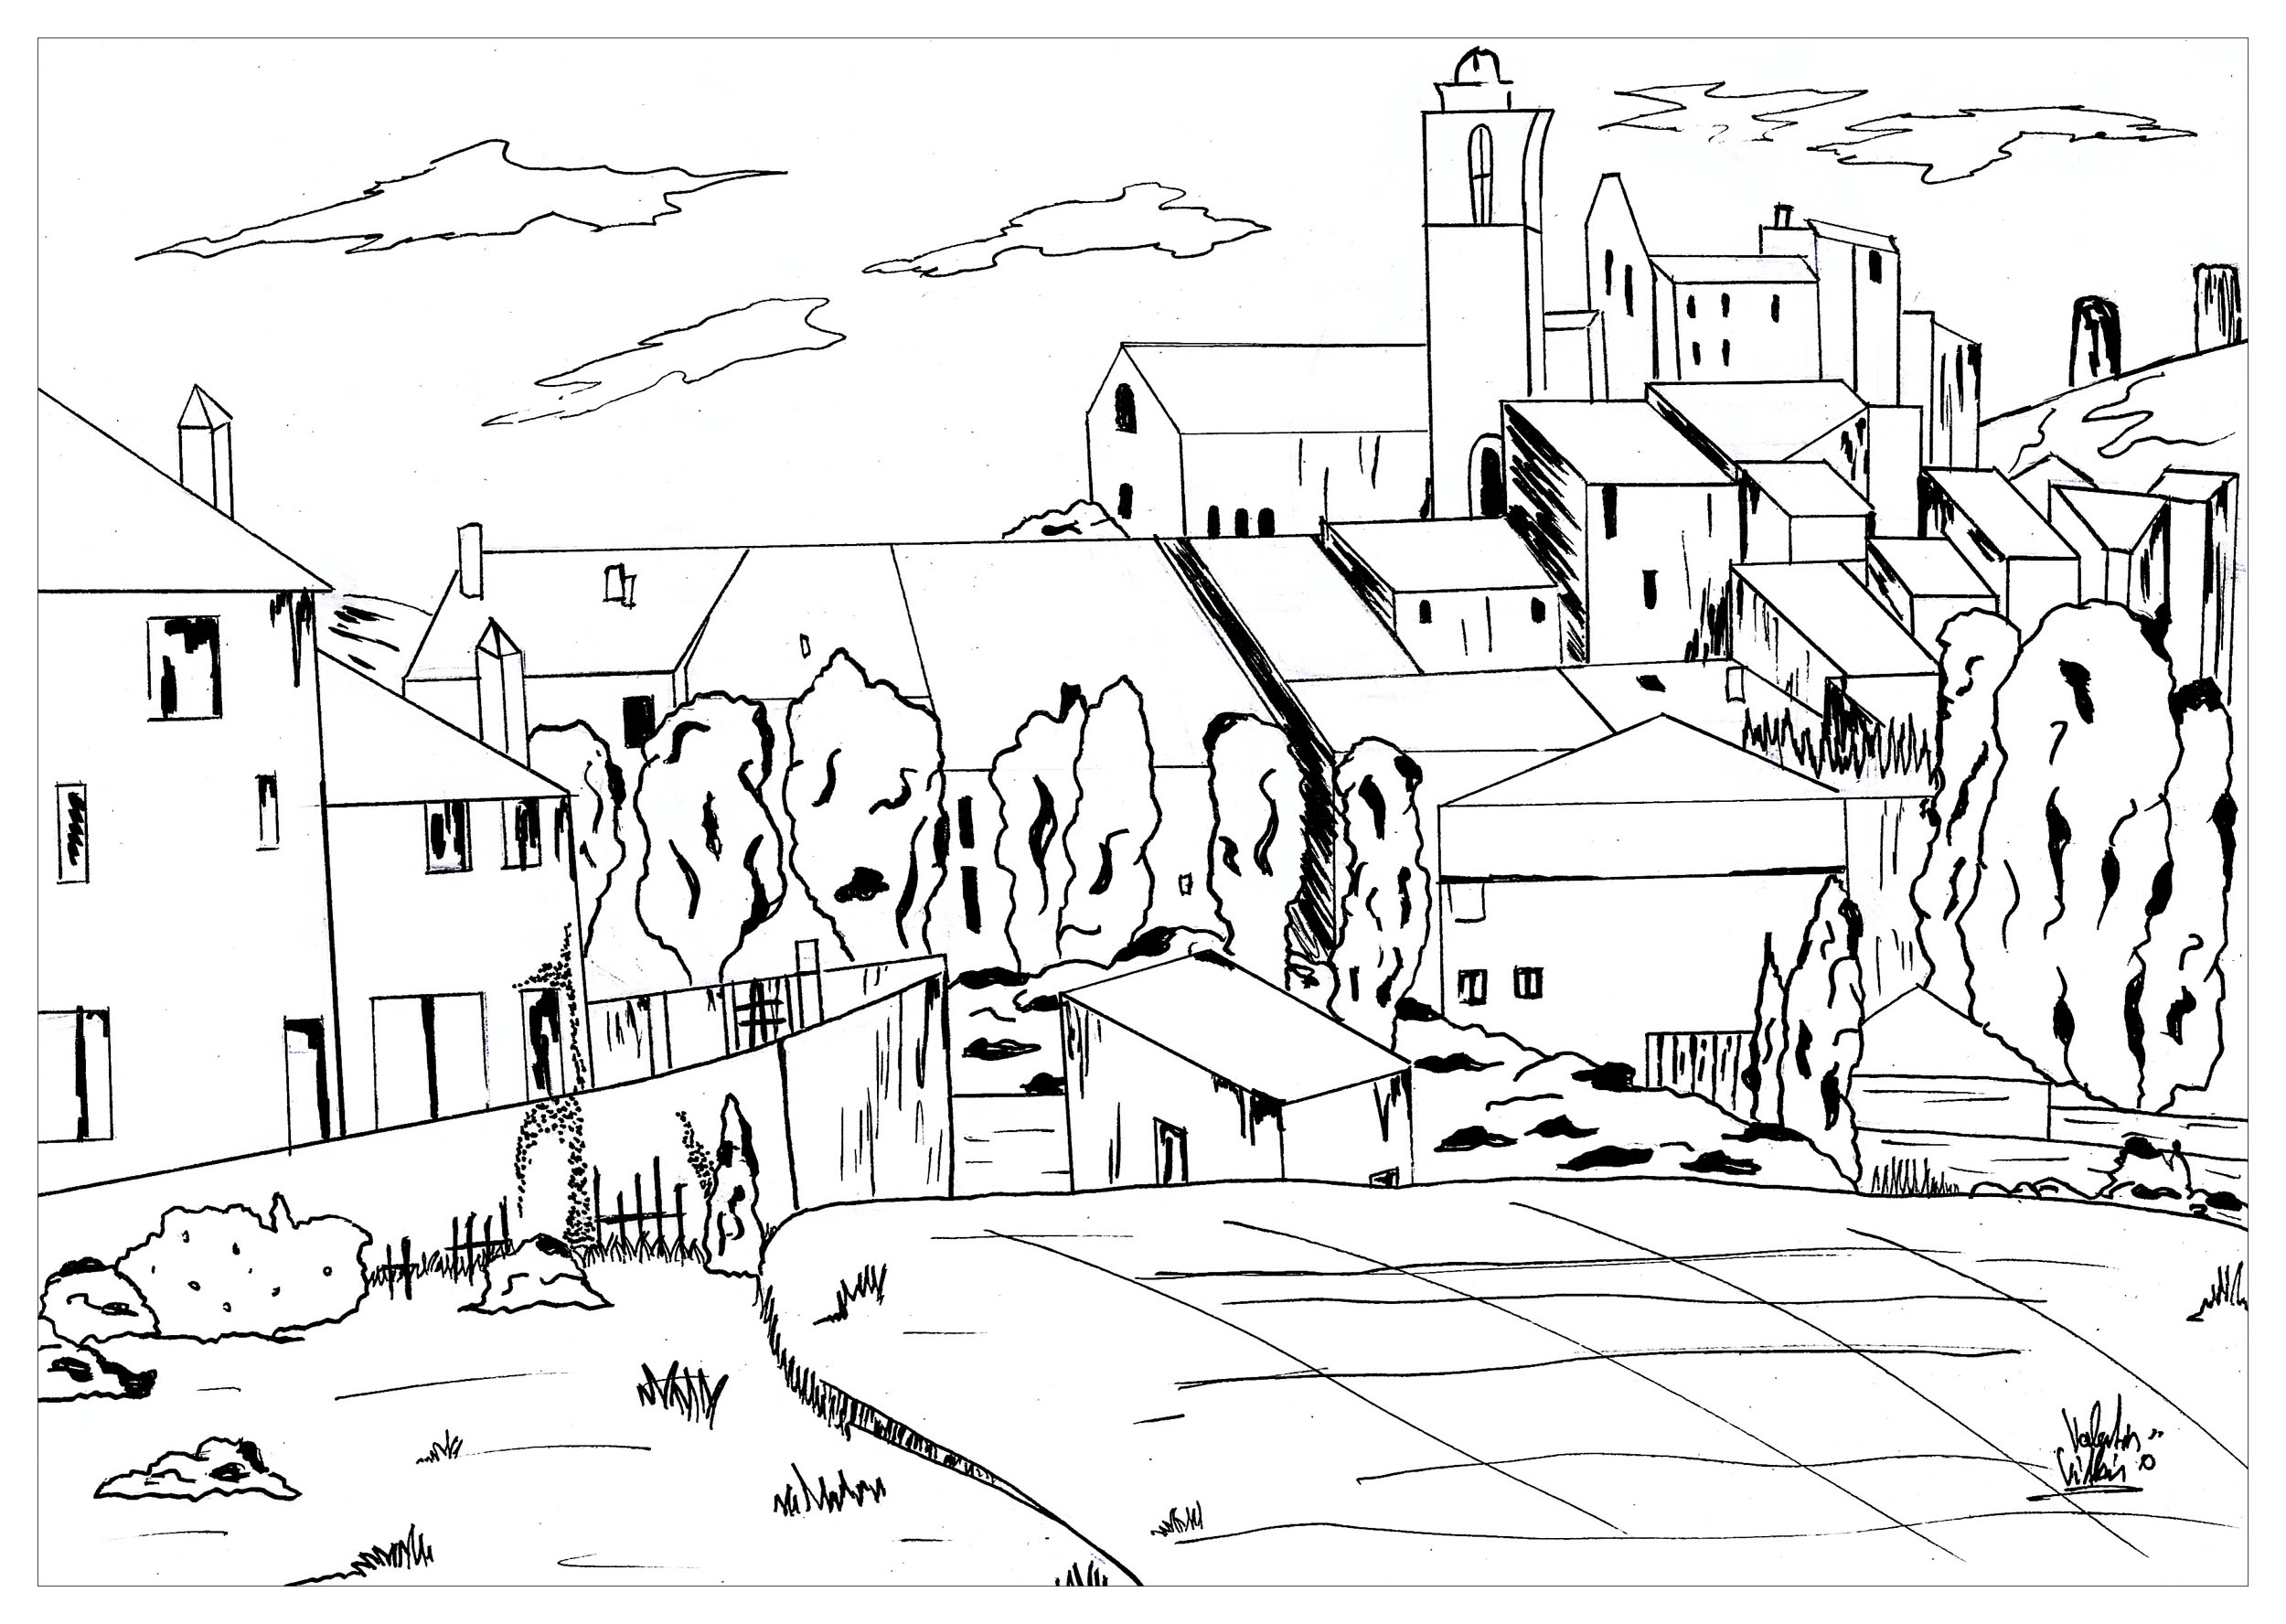 Coloring page inspired by a painting by Paul Cézanne, Gardanne